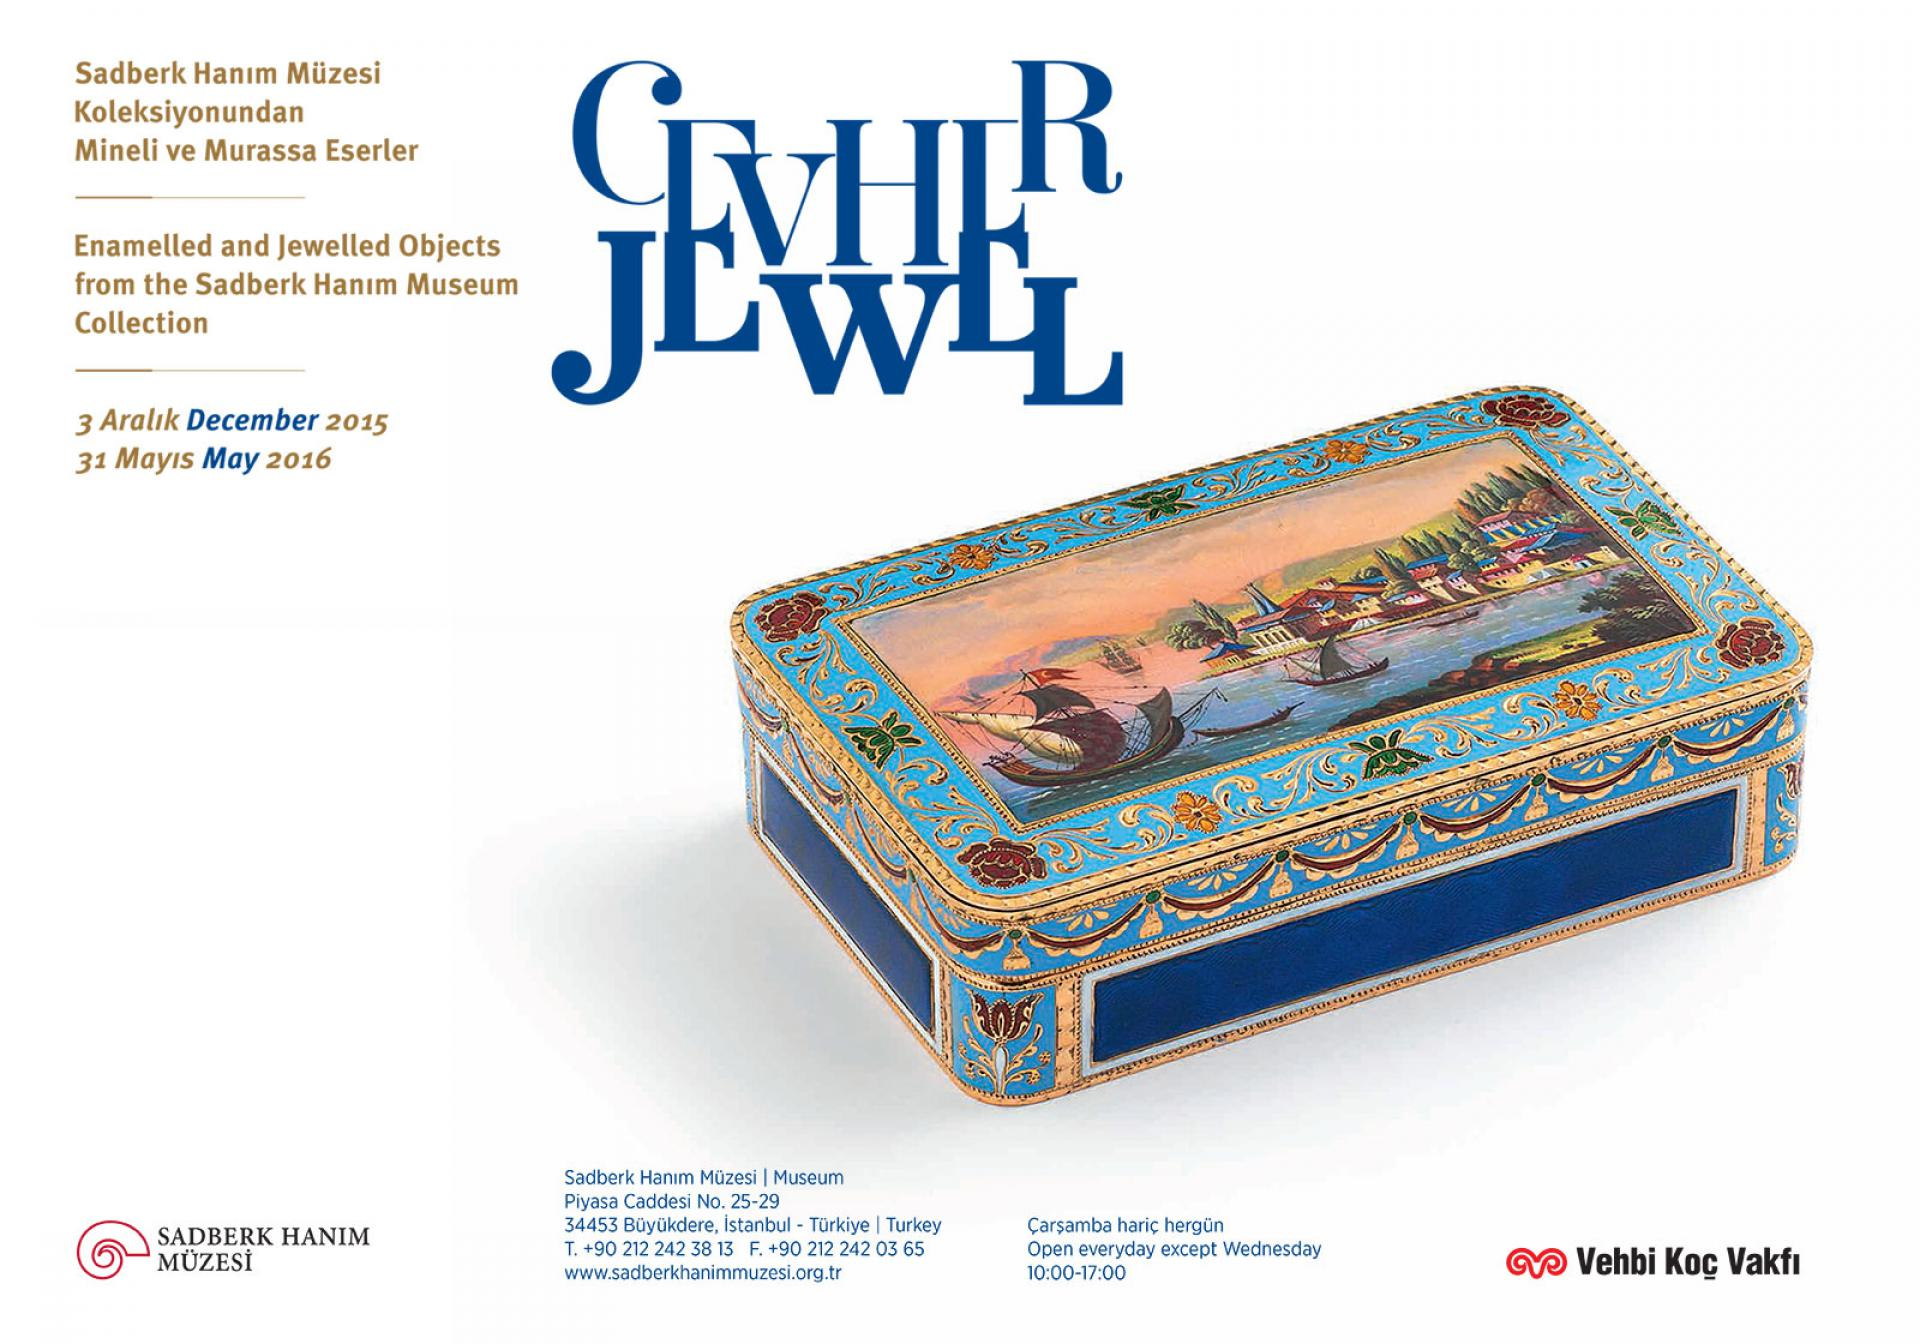 JEWEL Enamelled And Jewelled Objects  From The Sadberk Hanım Museum Collection Exhibition - EXHIBITIONS - Sadberk Hanım Museum